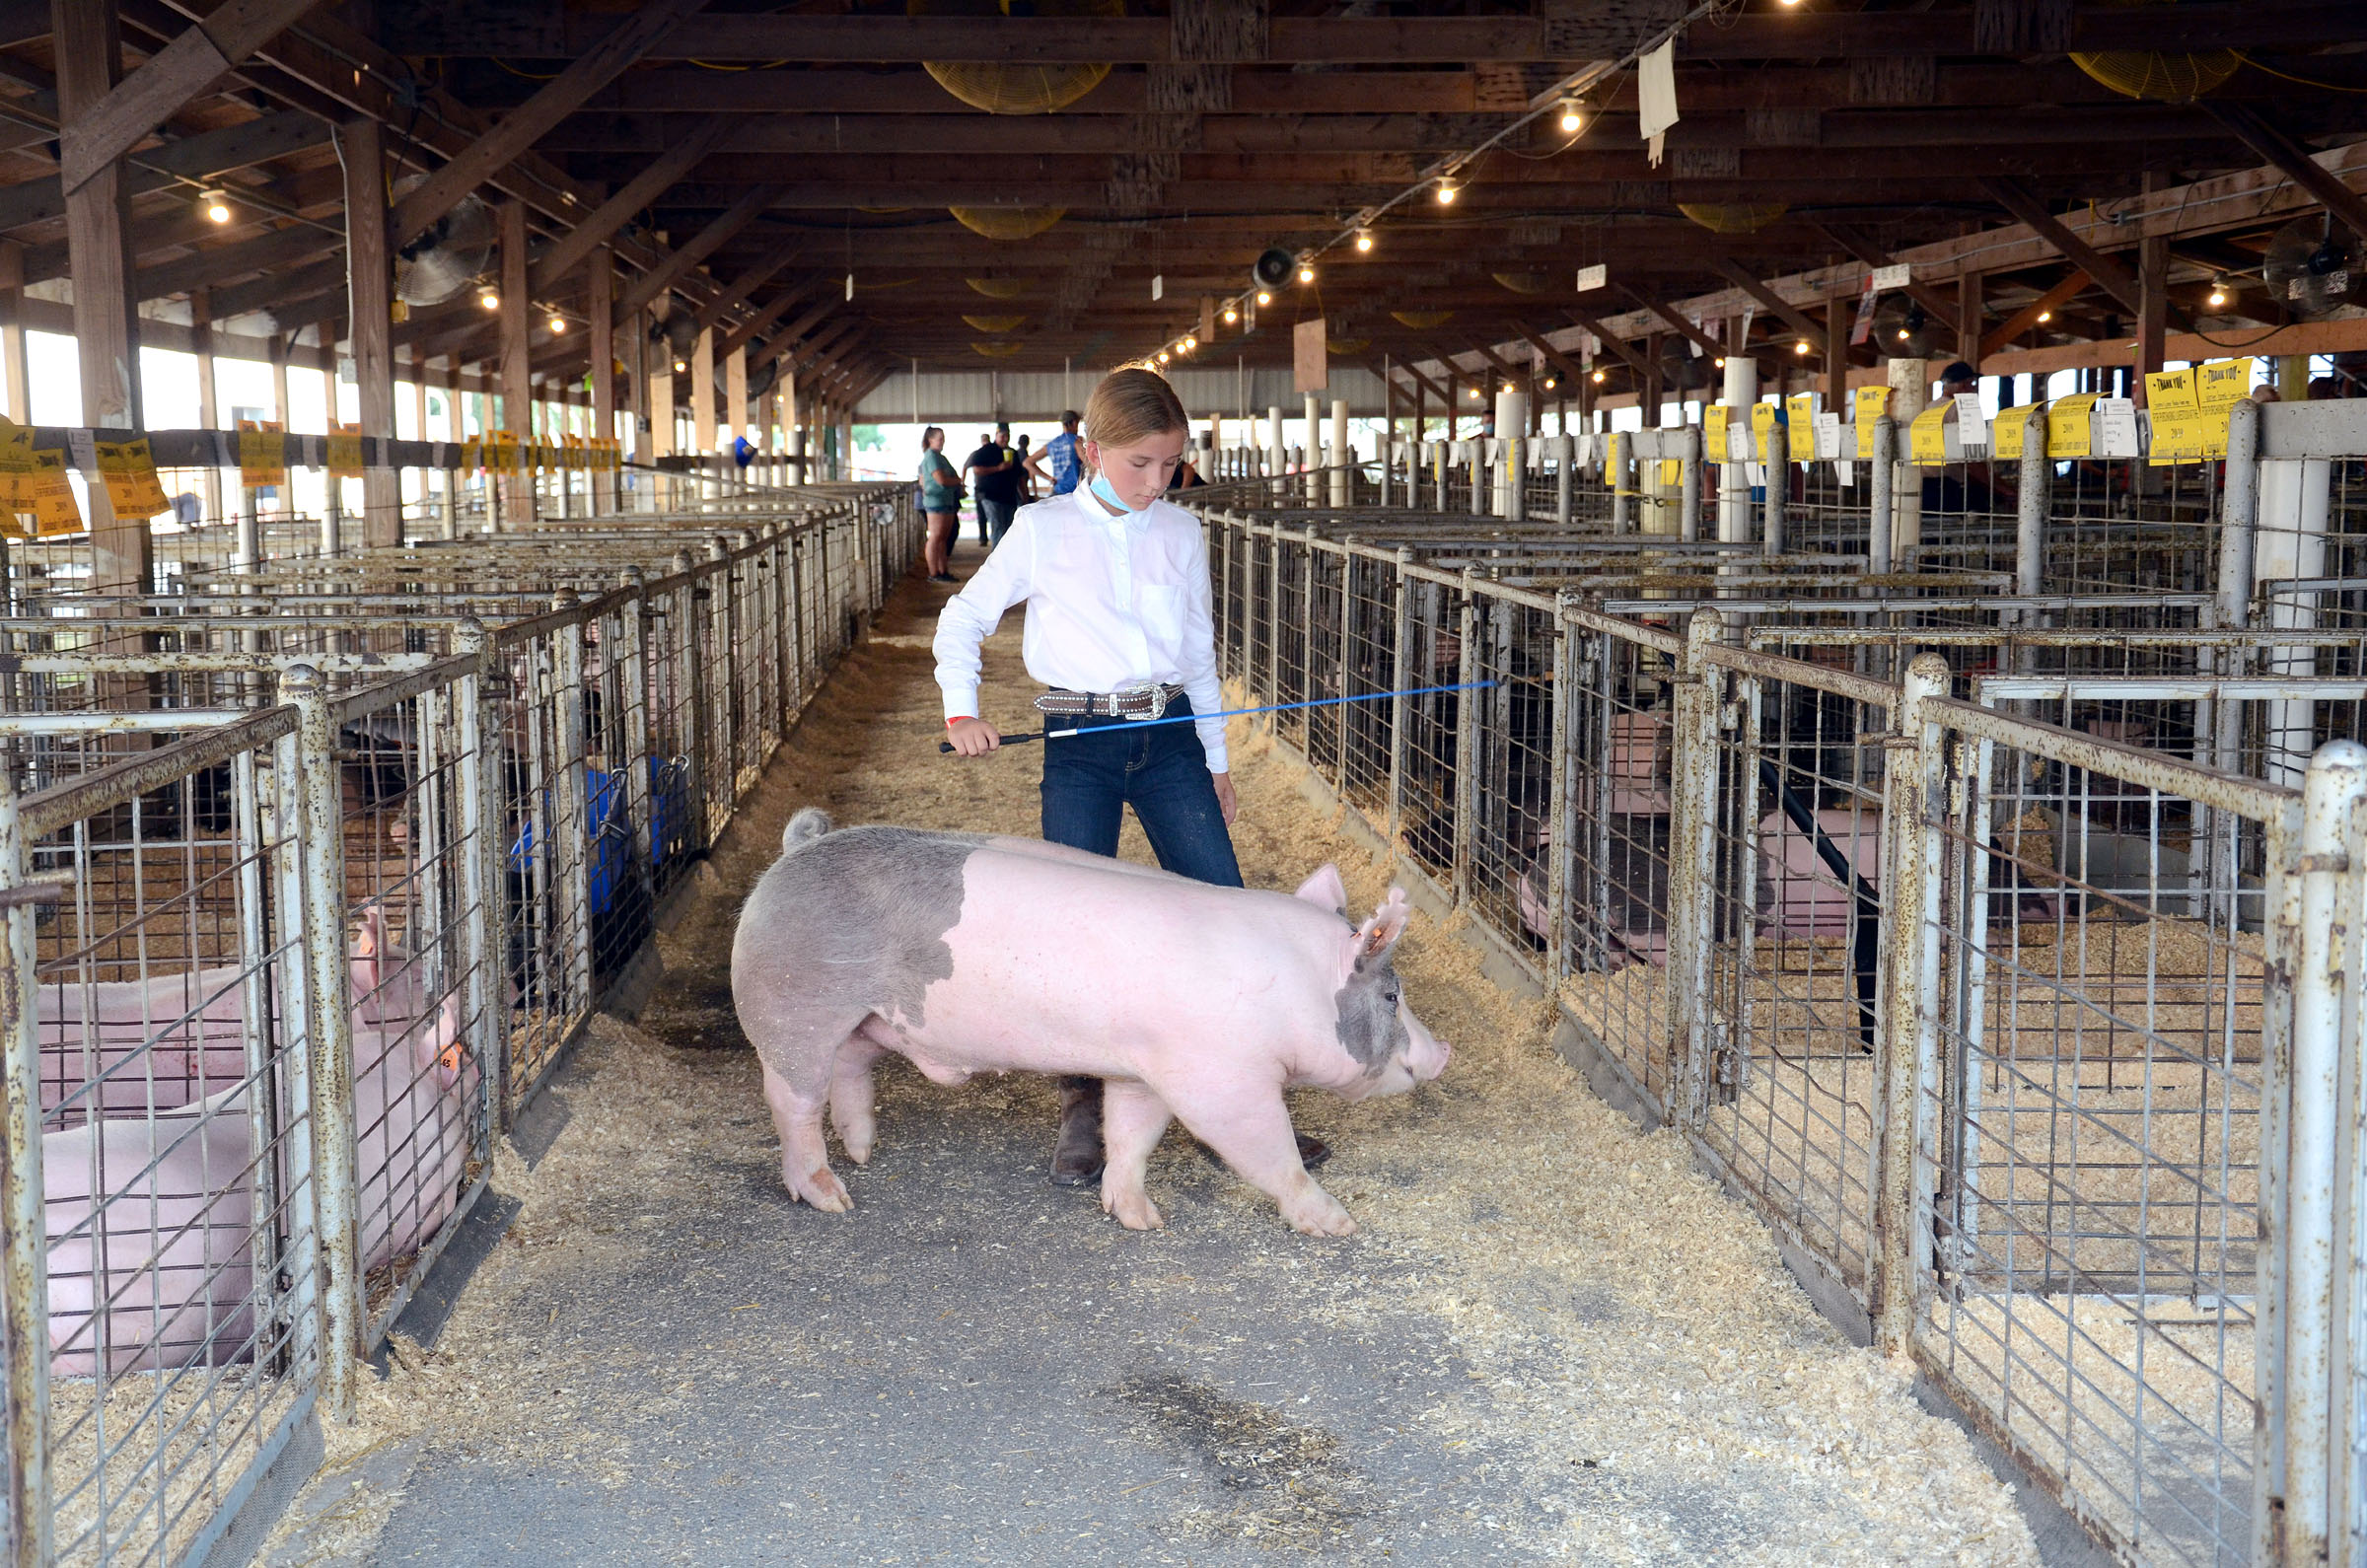 Peyton Myers takes care of her brother's pig while he is at football practice. The pig was being entered in the Sandusky County Fair's junior fair. (Press photo by Ken Grosjean)